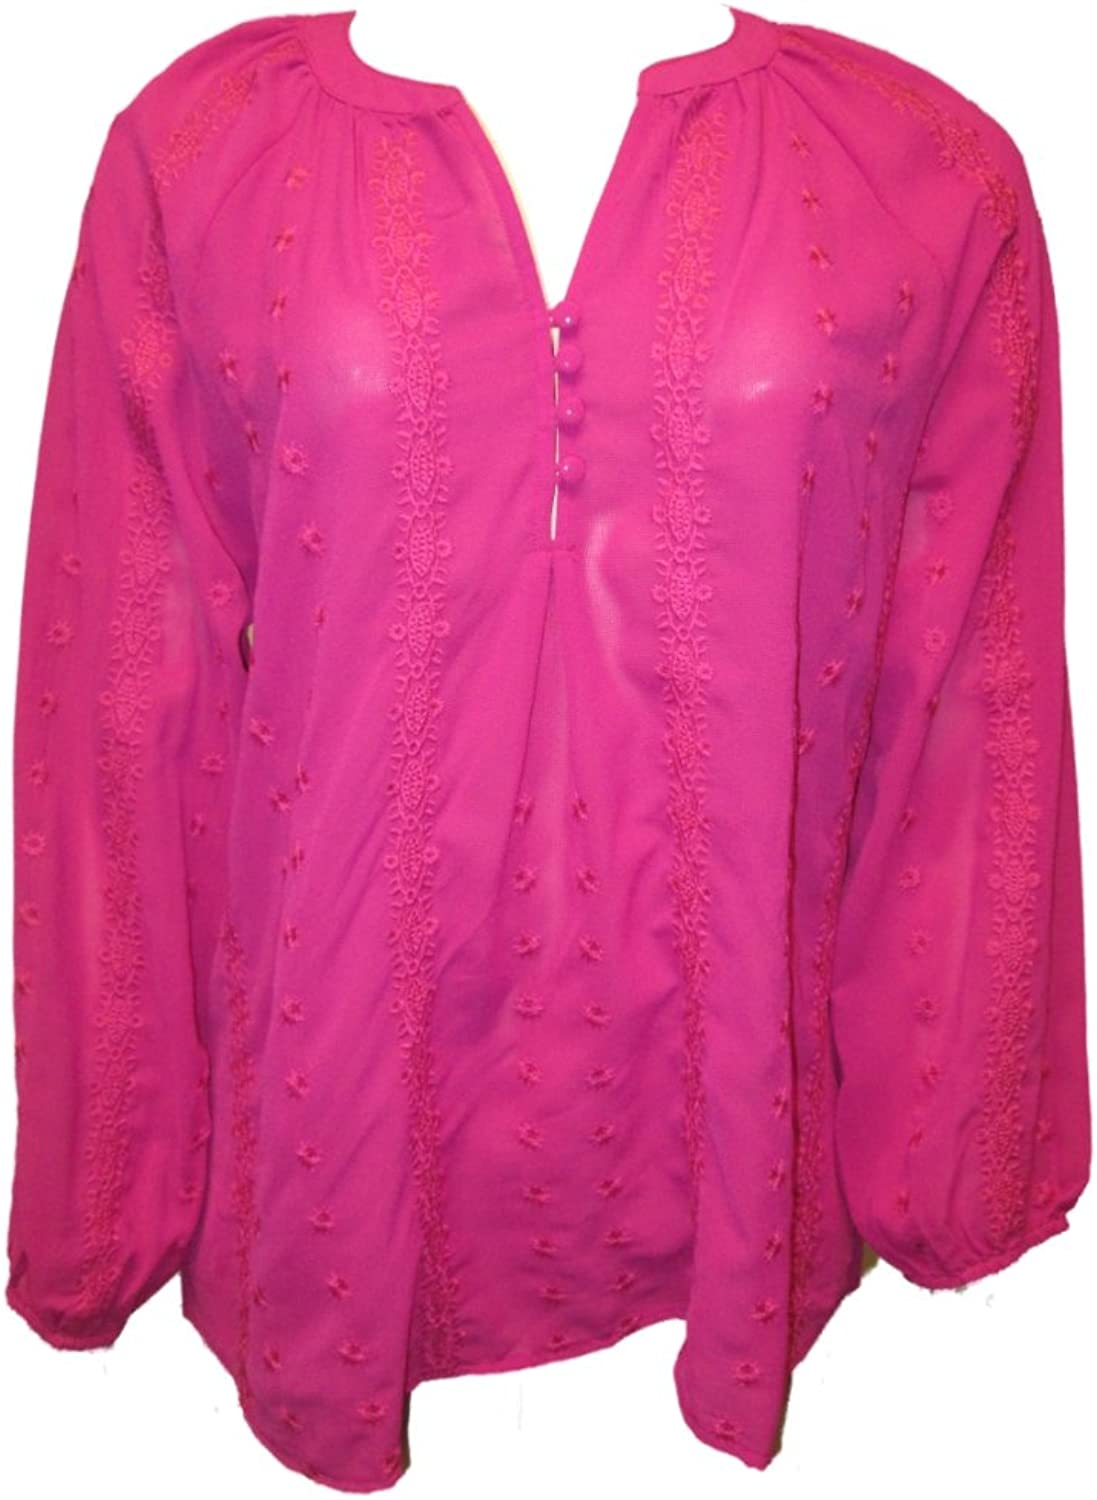 Esley Women's Tunic Top Embroidered Blouse Pink